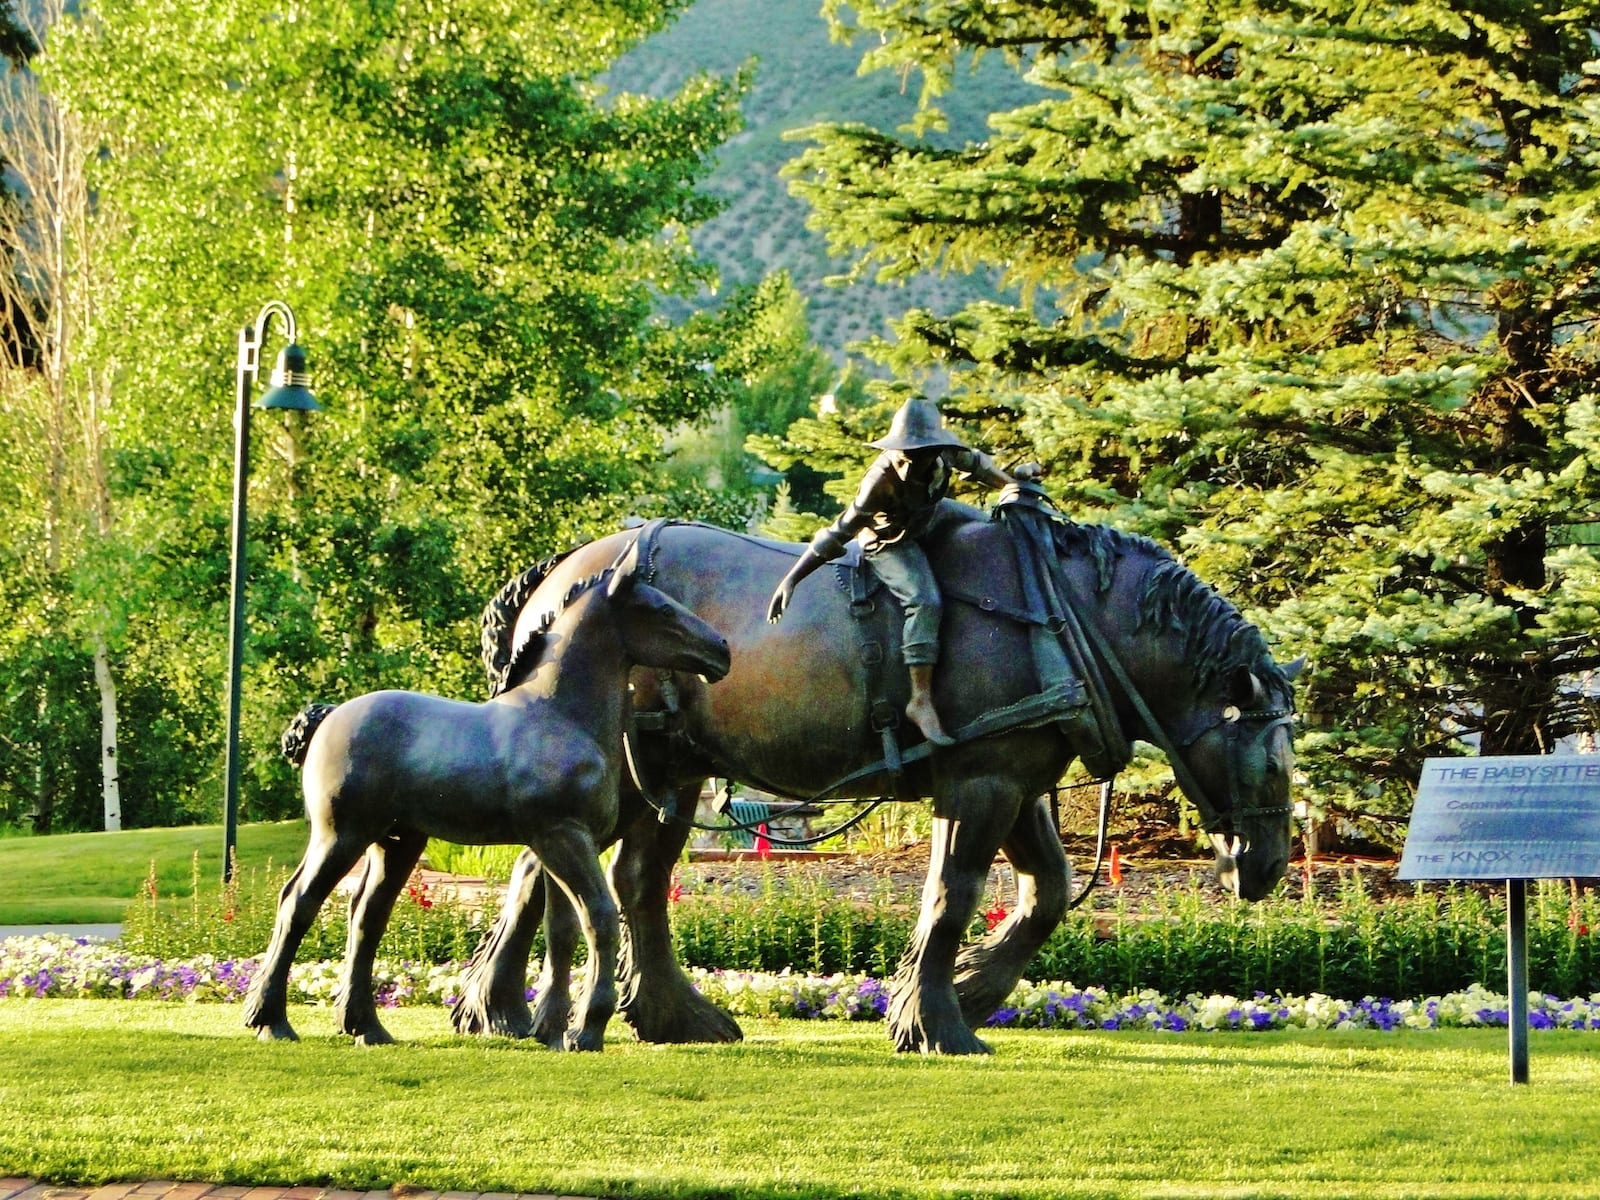 The Babysitter Sculpture 2 Horses 1 Person